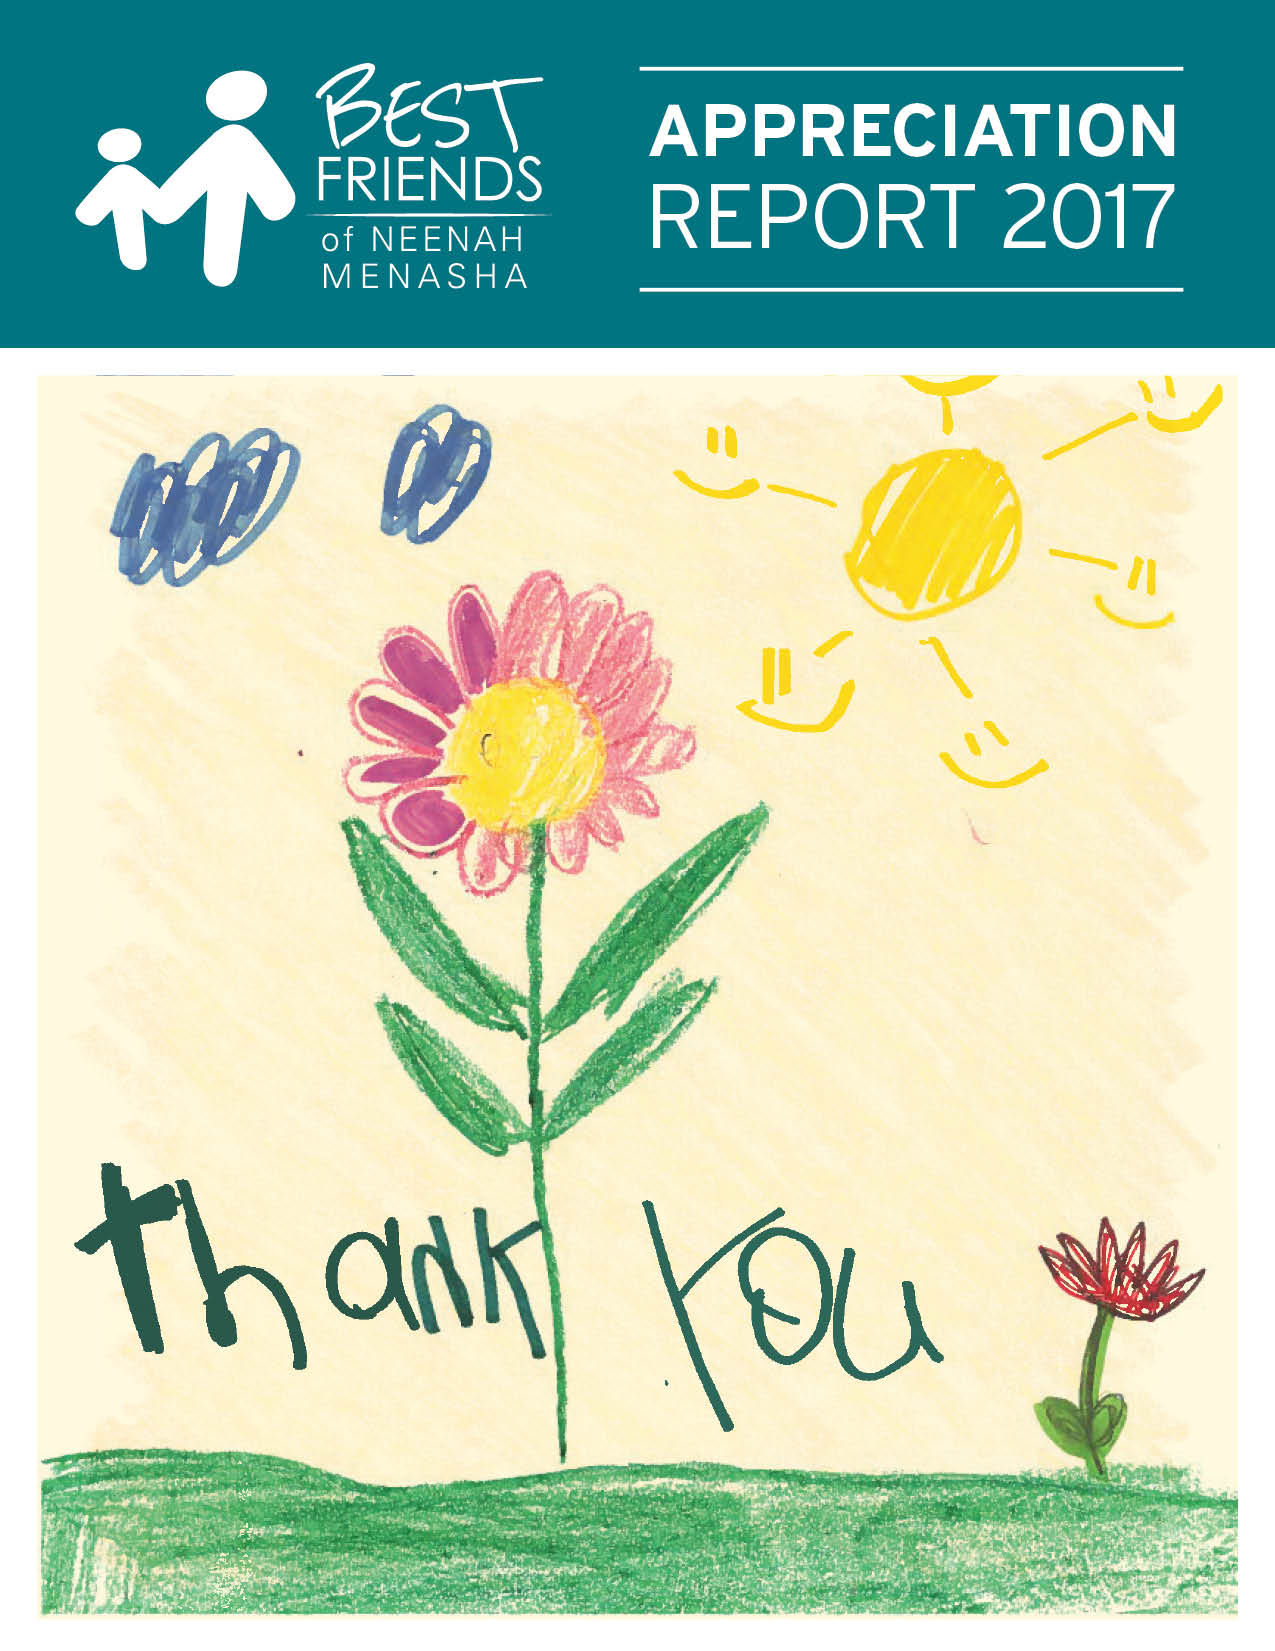 Click image to view 2016 Annual Report